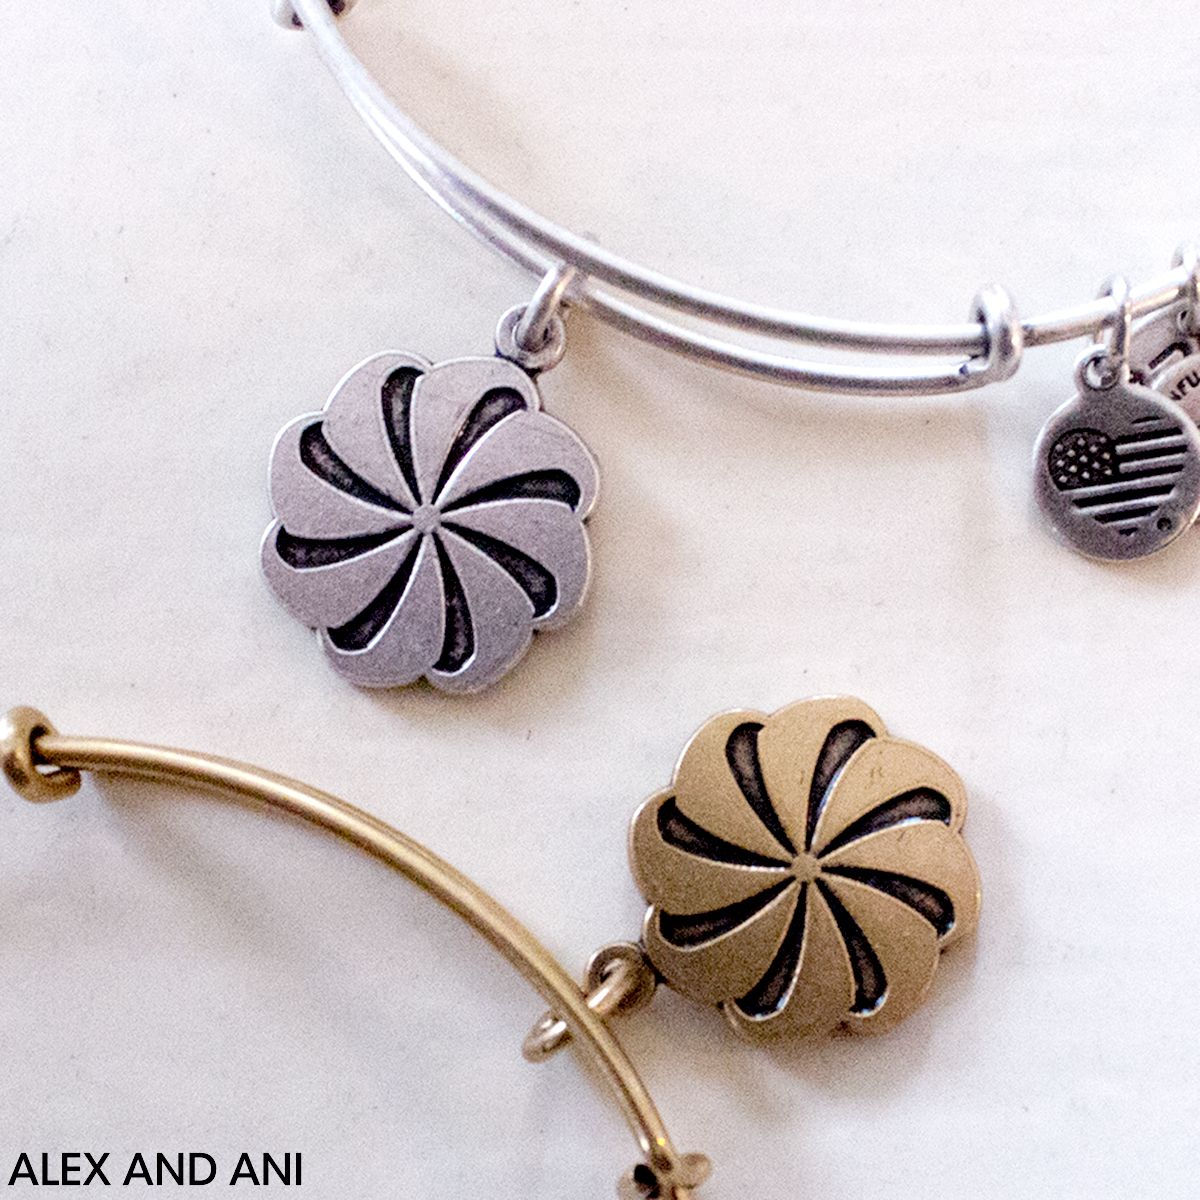 Alex And Ani Bracelets Necklaces Earrings And More Eternity